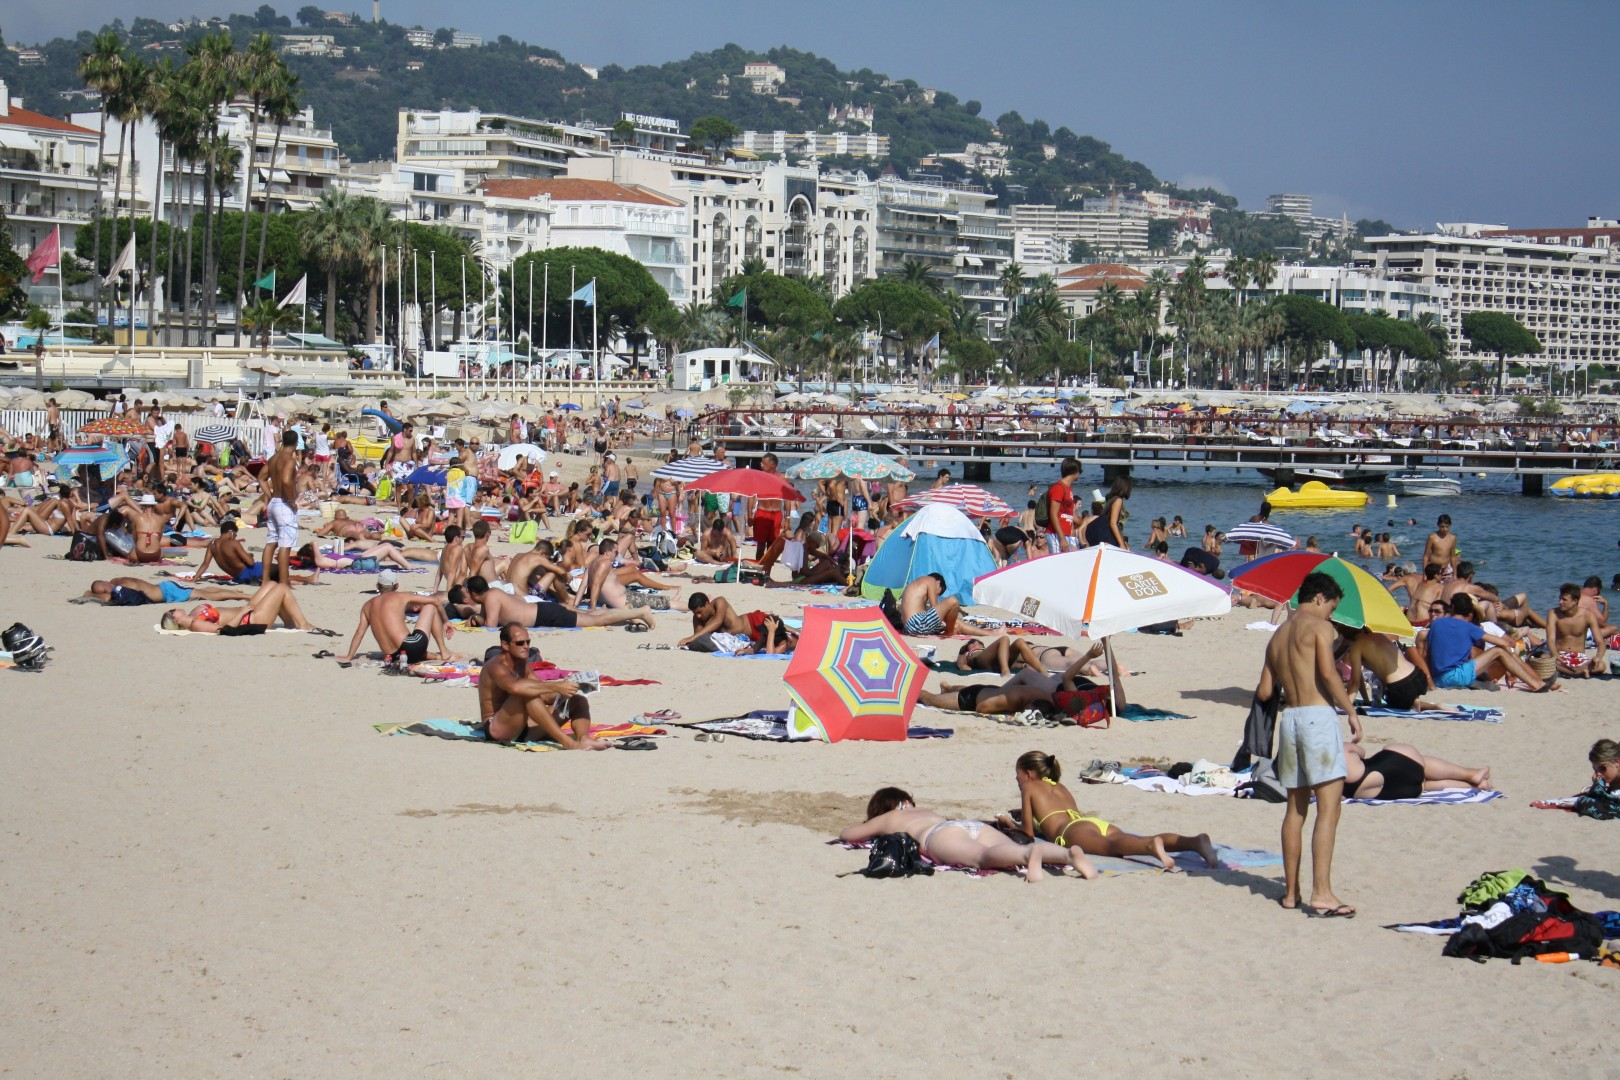 cote d azur plage - Photo